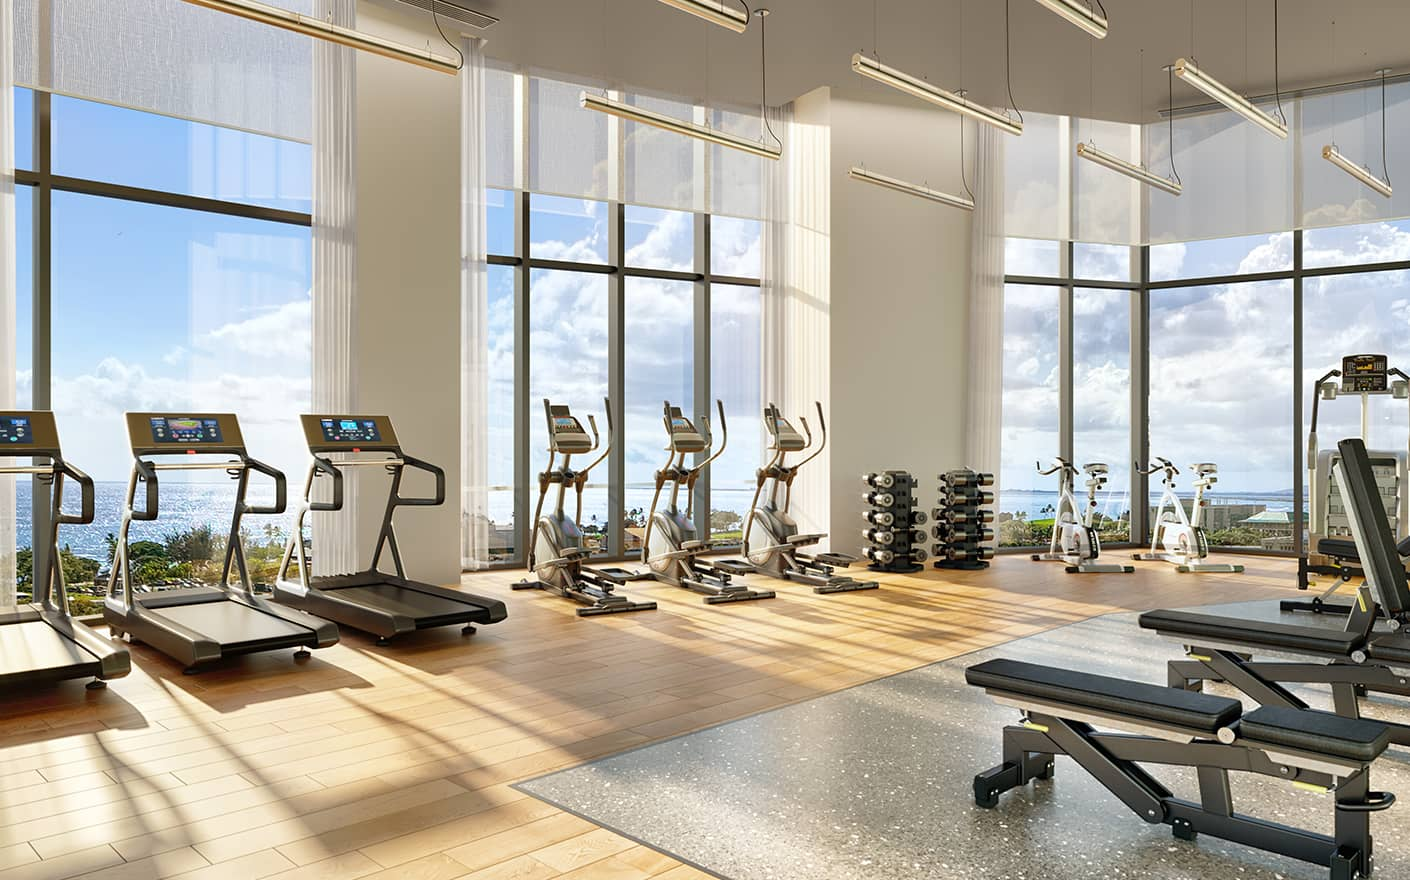 The Fitness Center overlooking the Pacific Ocean